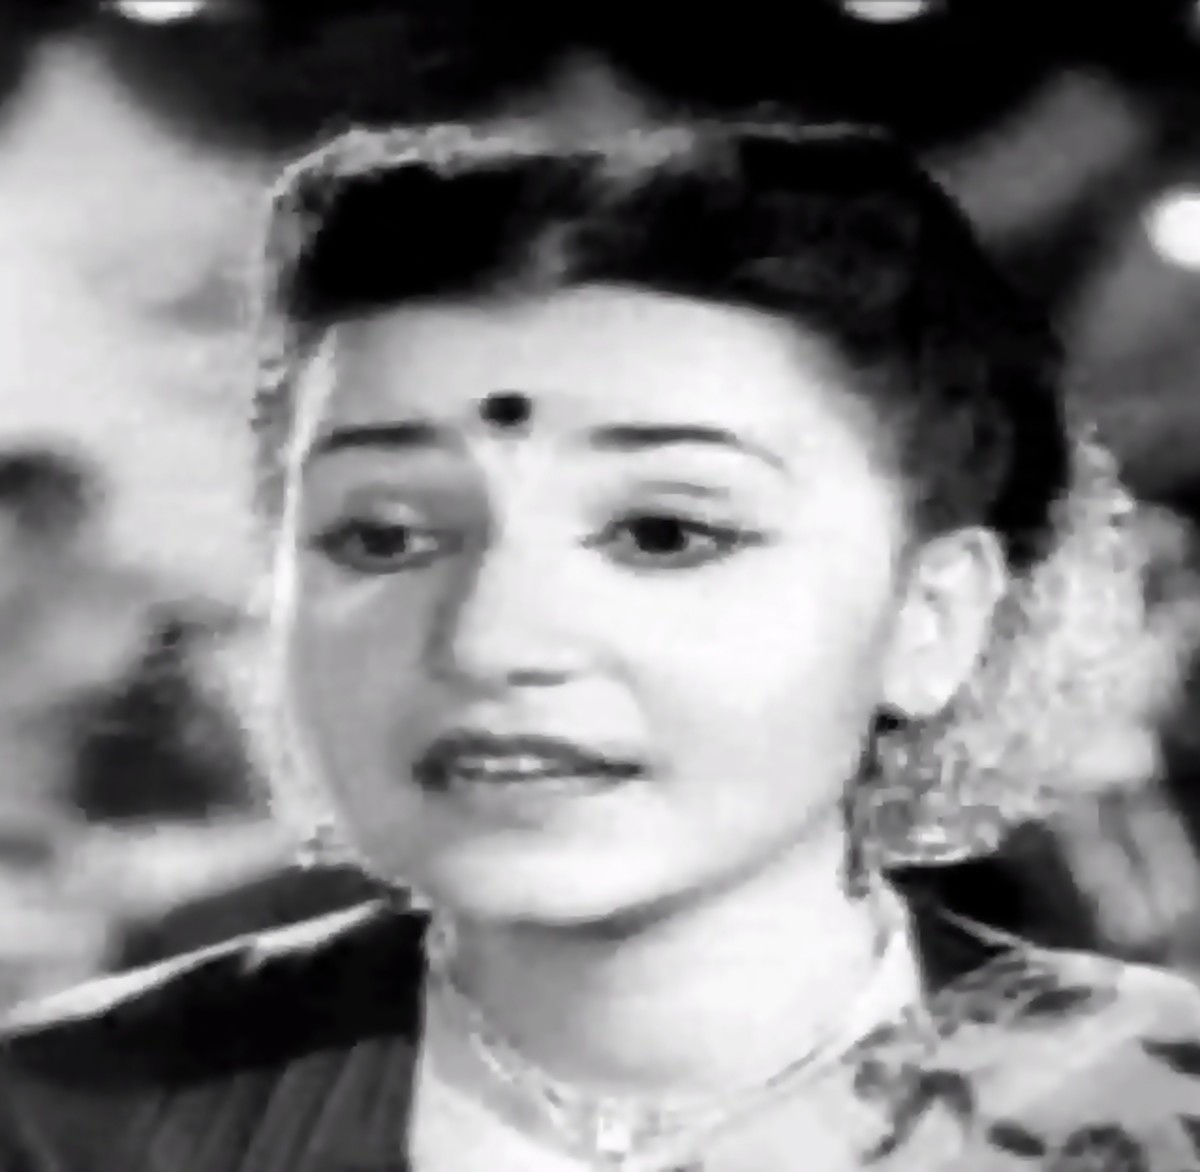 Actress Rehana in Sargam - A nice number that pulls a hard one on artificial vocal distortions becoming a part of classical music